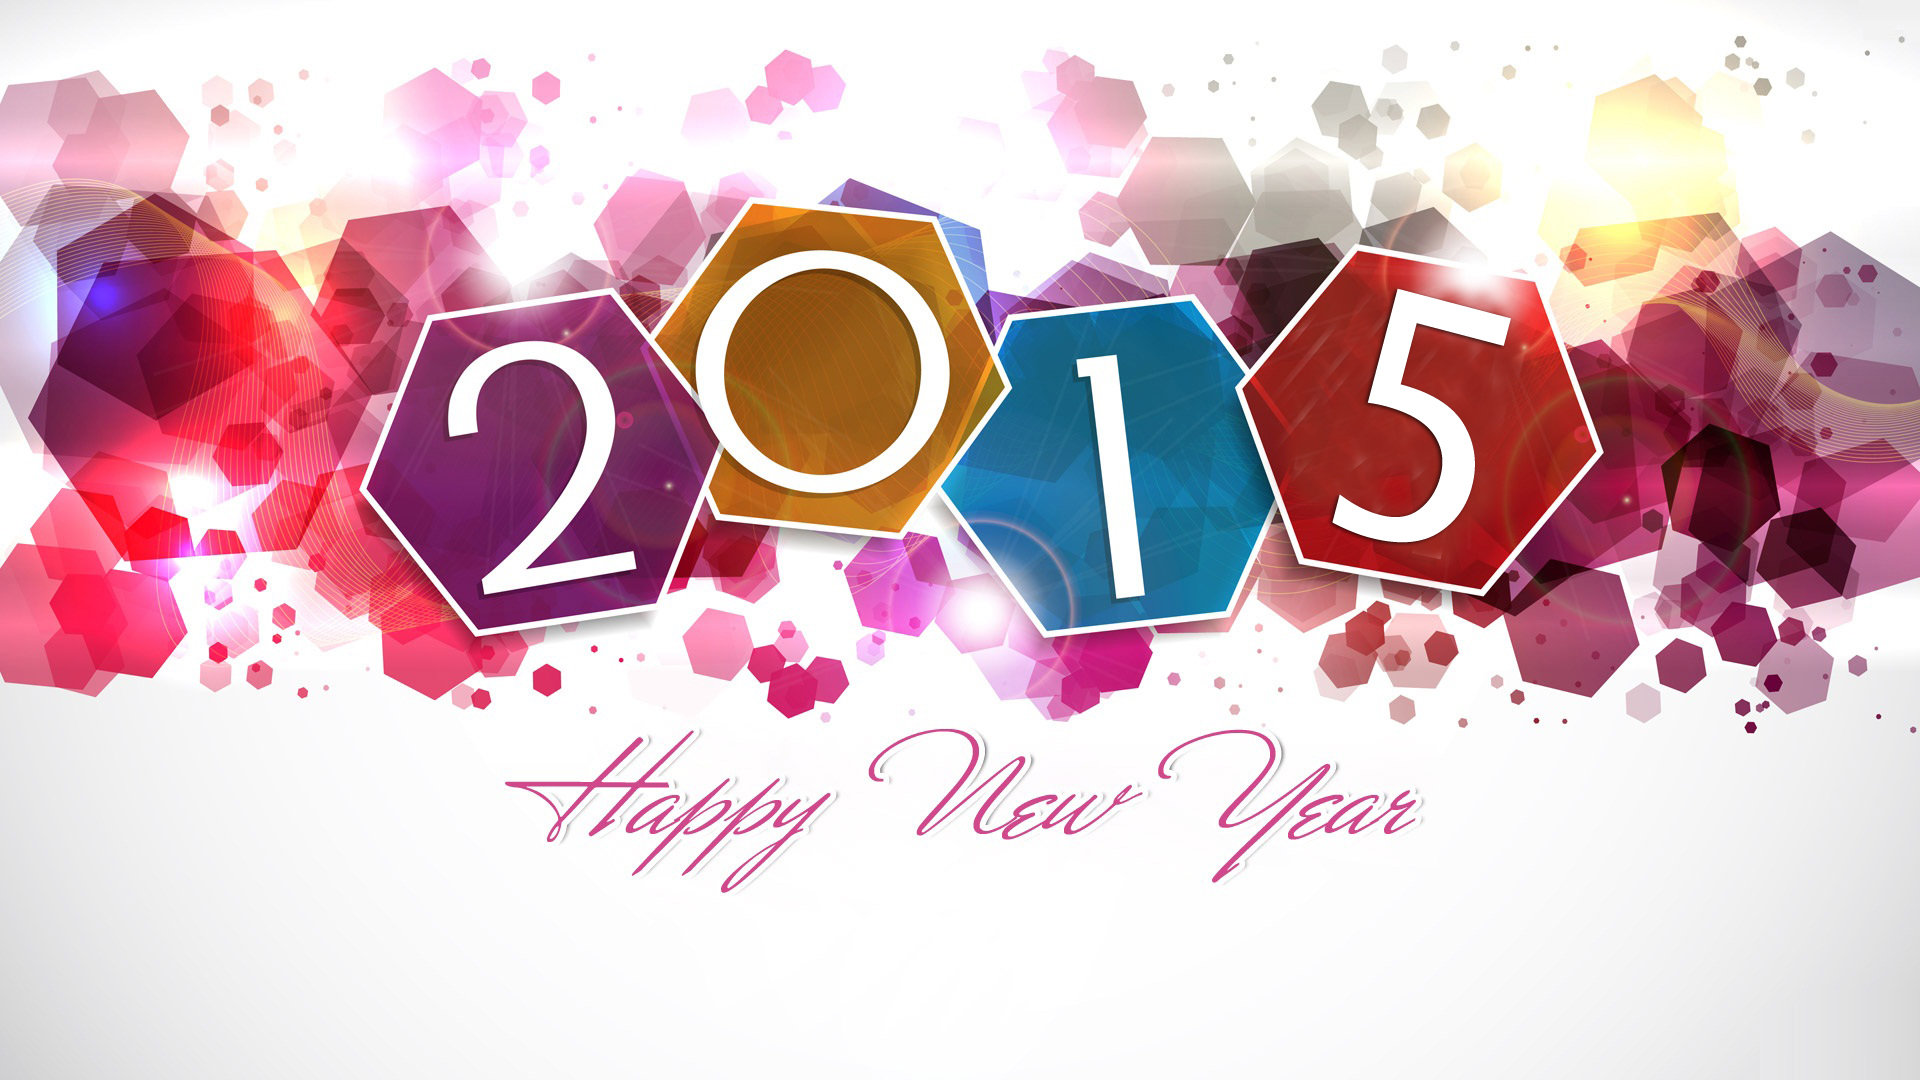 New Year 2015 Wallpaper High Definition